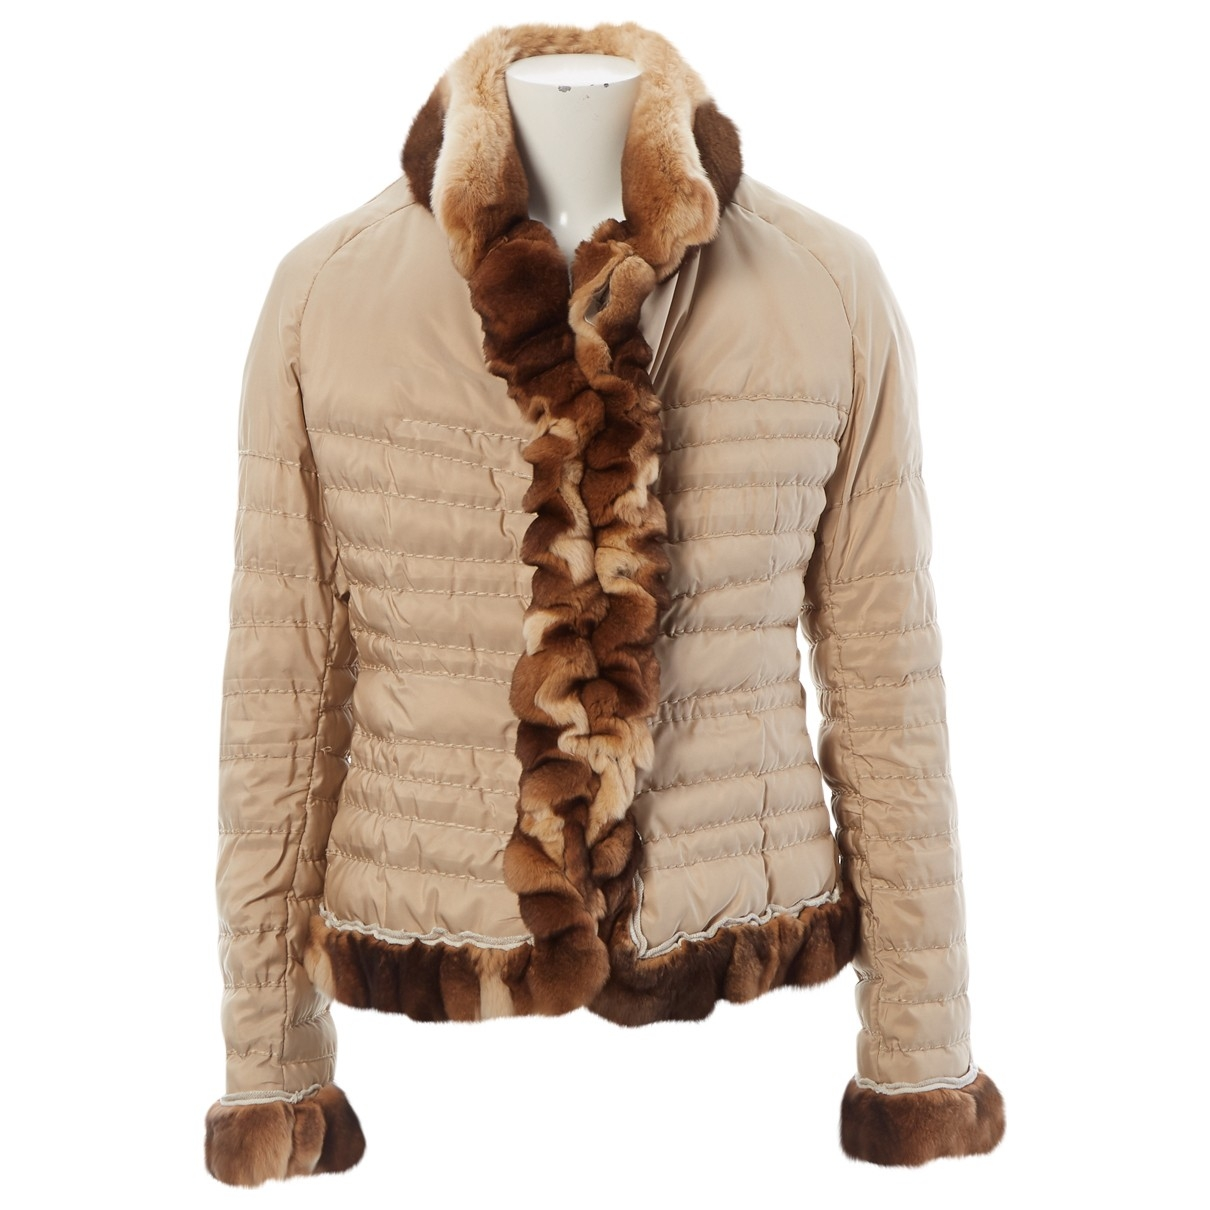 Ermanno Scervino \N Beige jacket for Women 44 IT